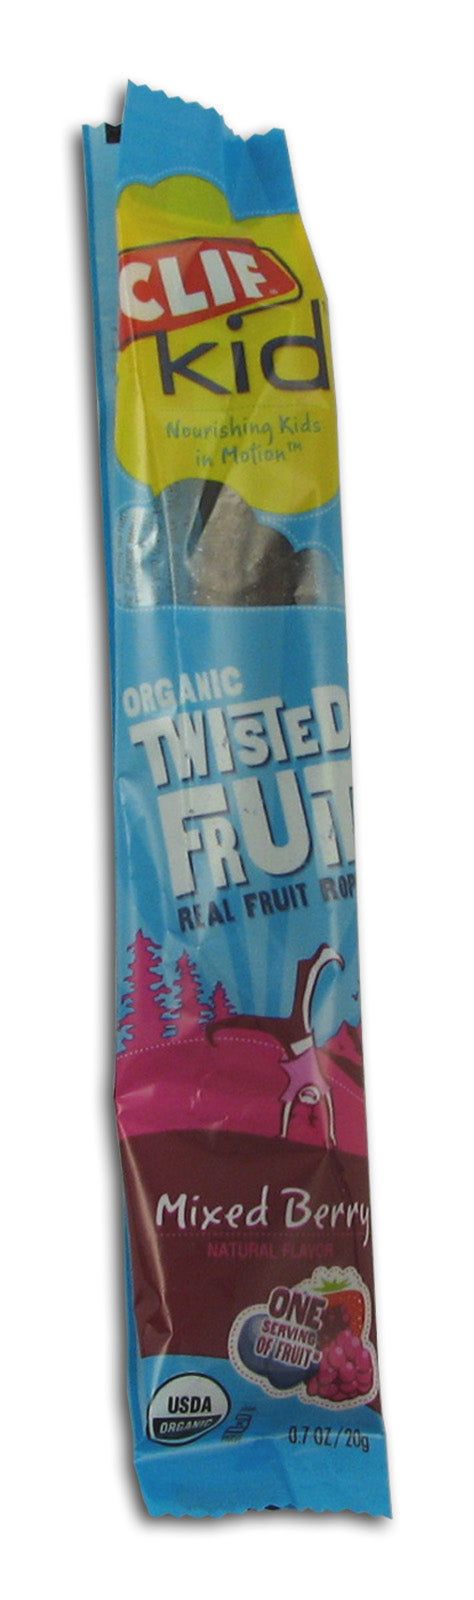 Twisted Fruit, Mixed Berry, Organic